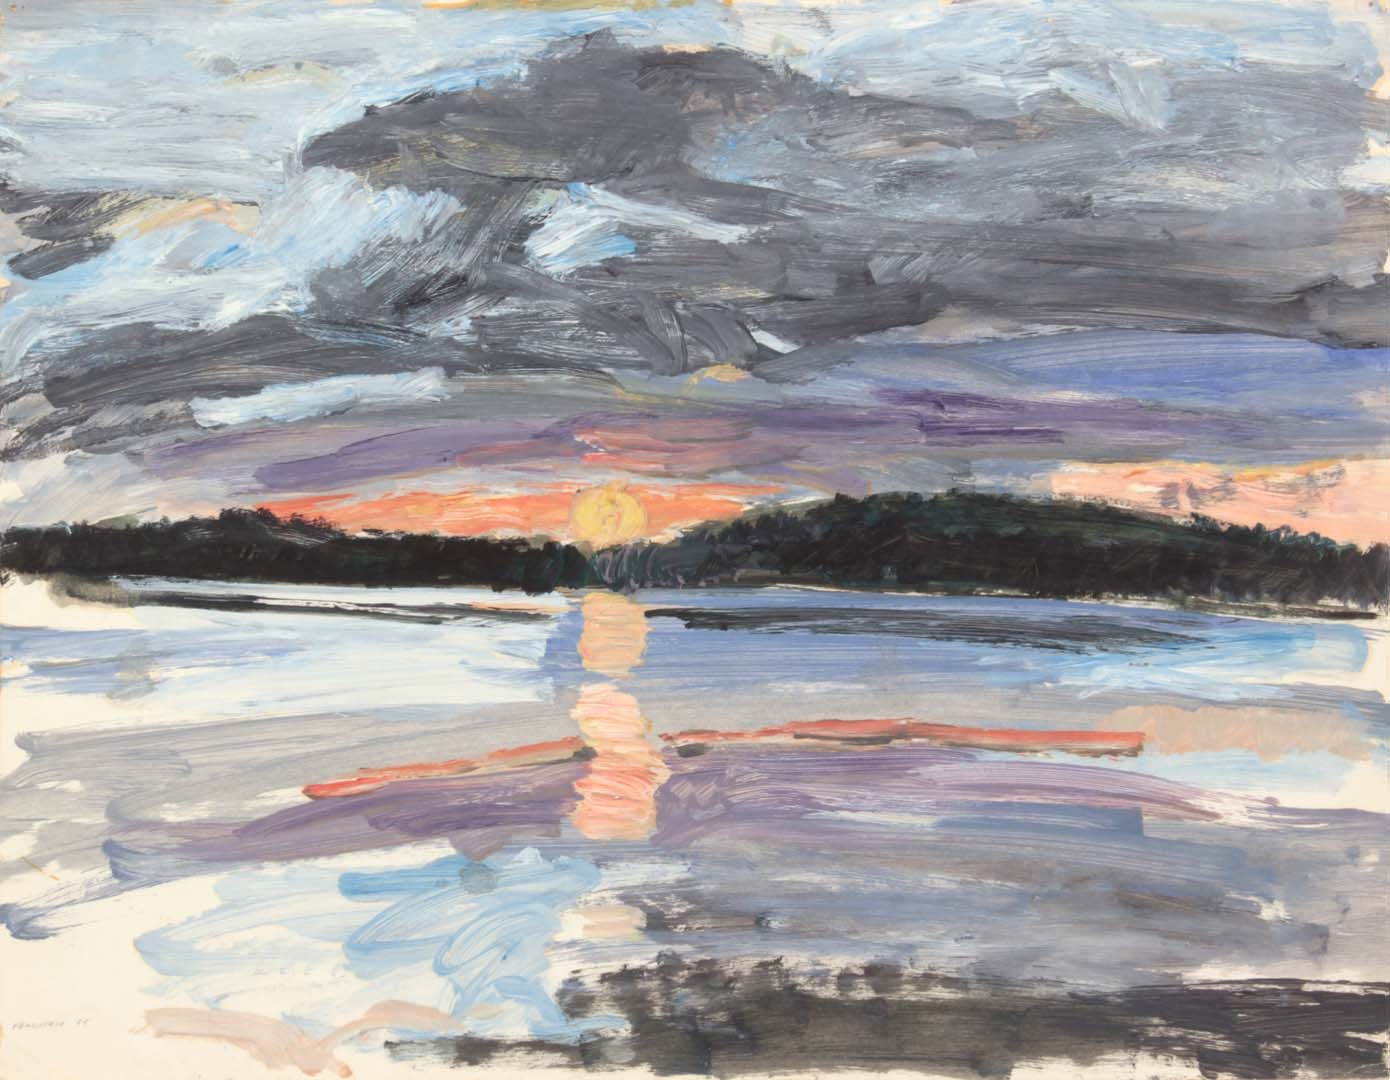 1955 Sunset Over Sea #2 Oil on Paper 16.875 x 21.75